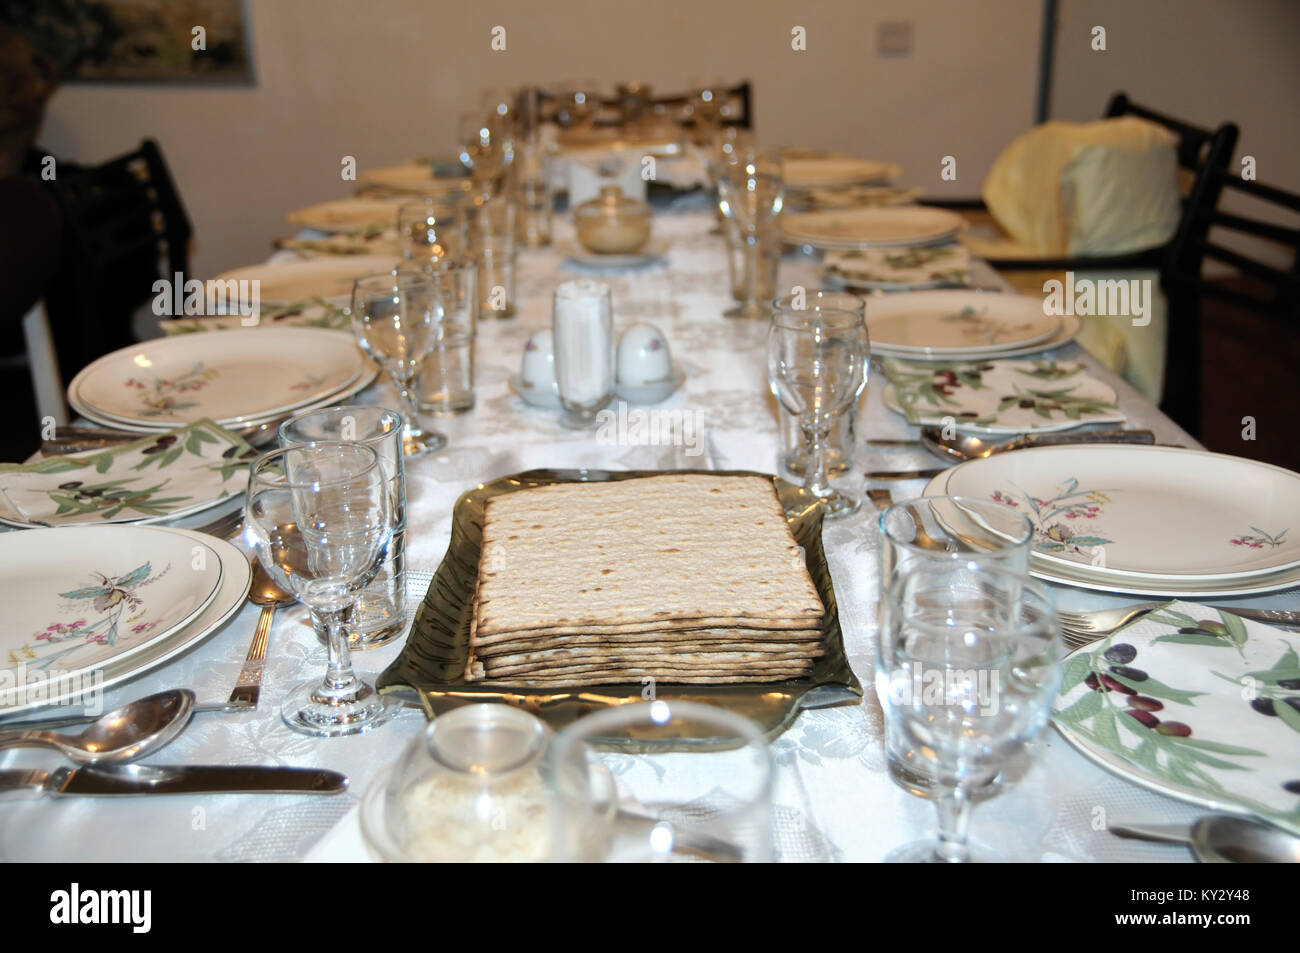 Table set for a Jewish Festive meal on Passover (transliterated as Pesach or Pesah), also called chag HaMatzot  - Stock Image